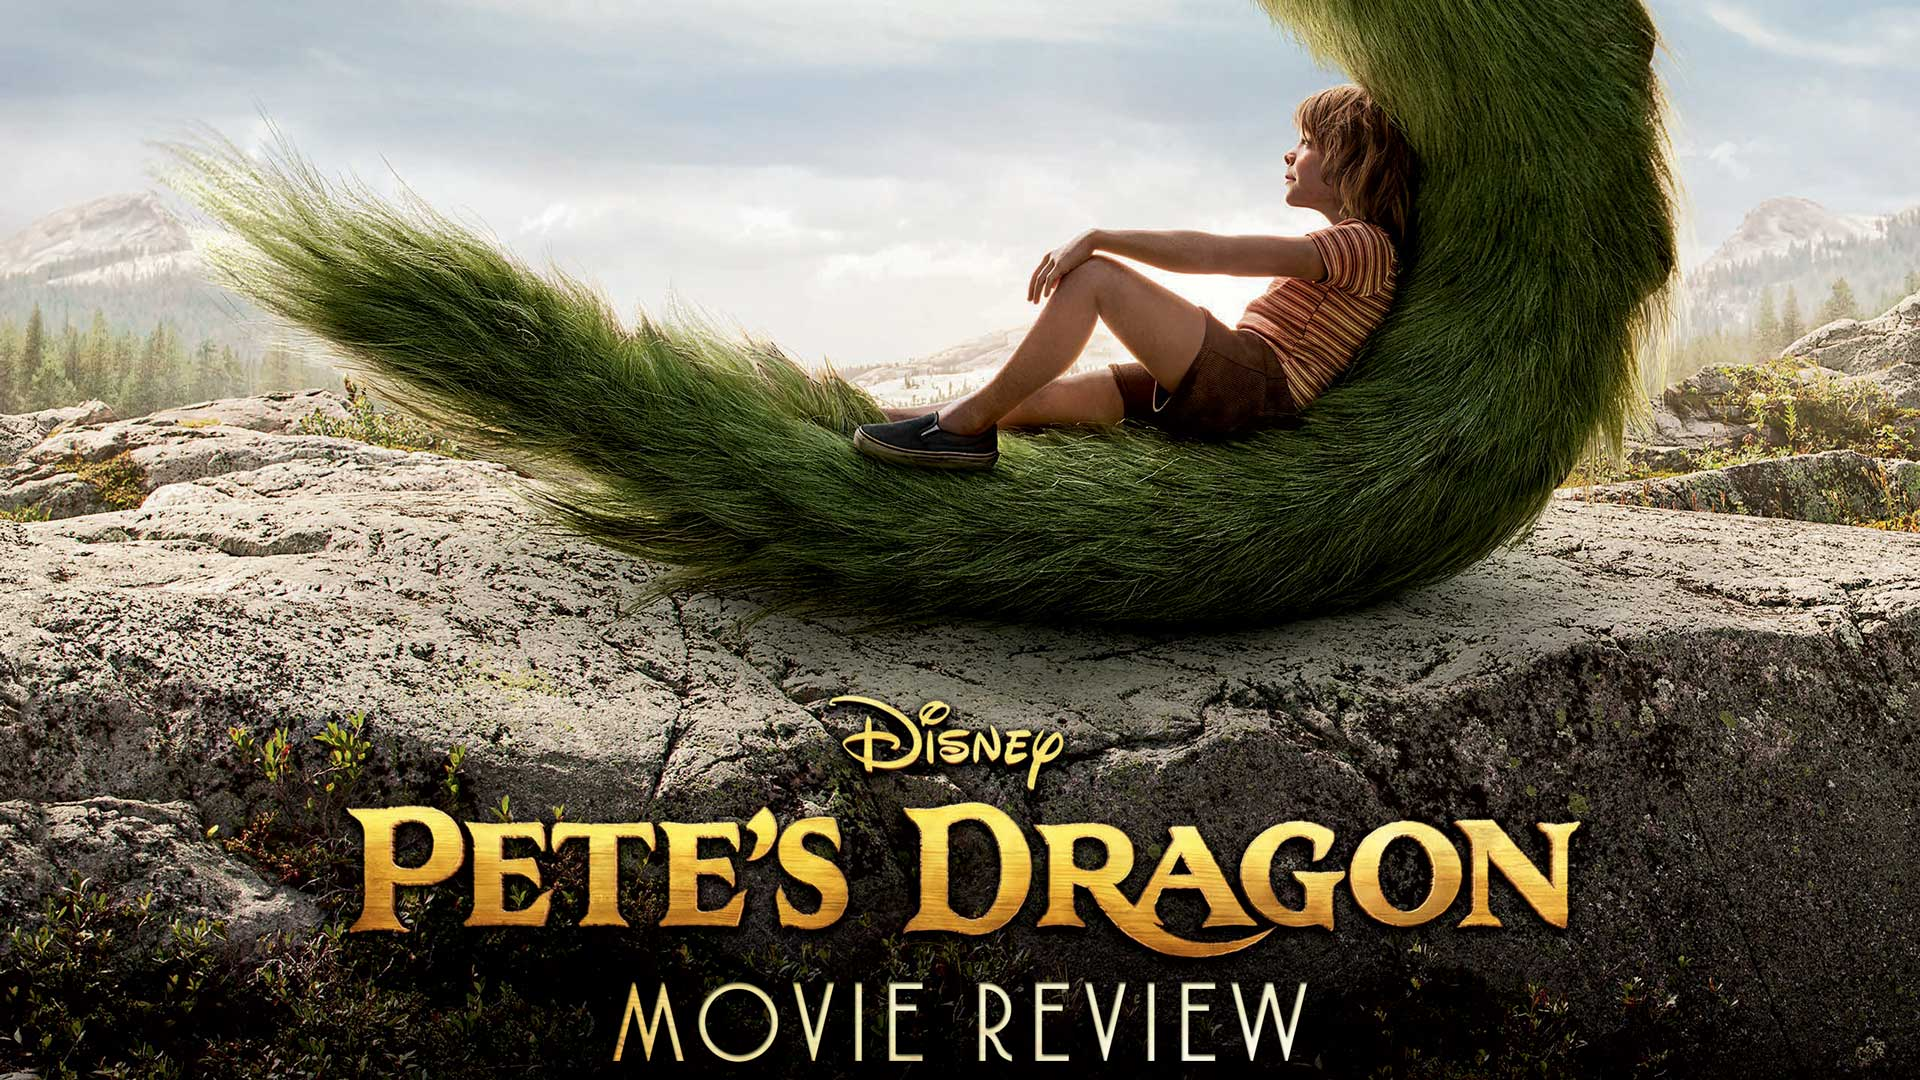 Pete's Dragon 2016 Movie Review